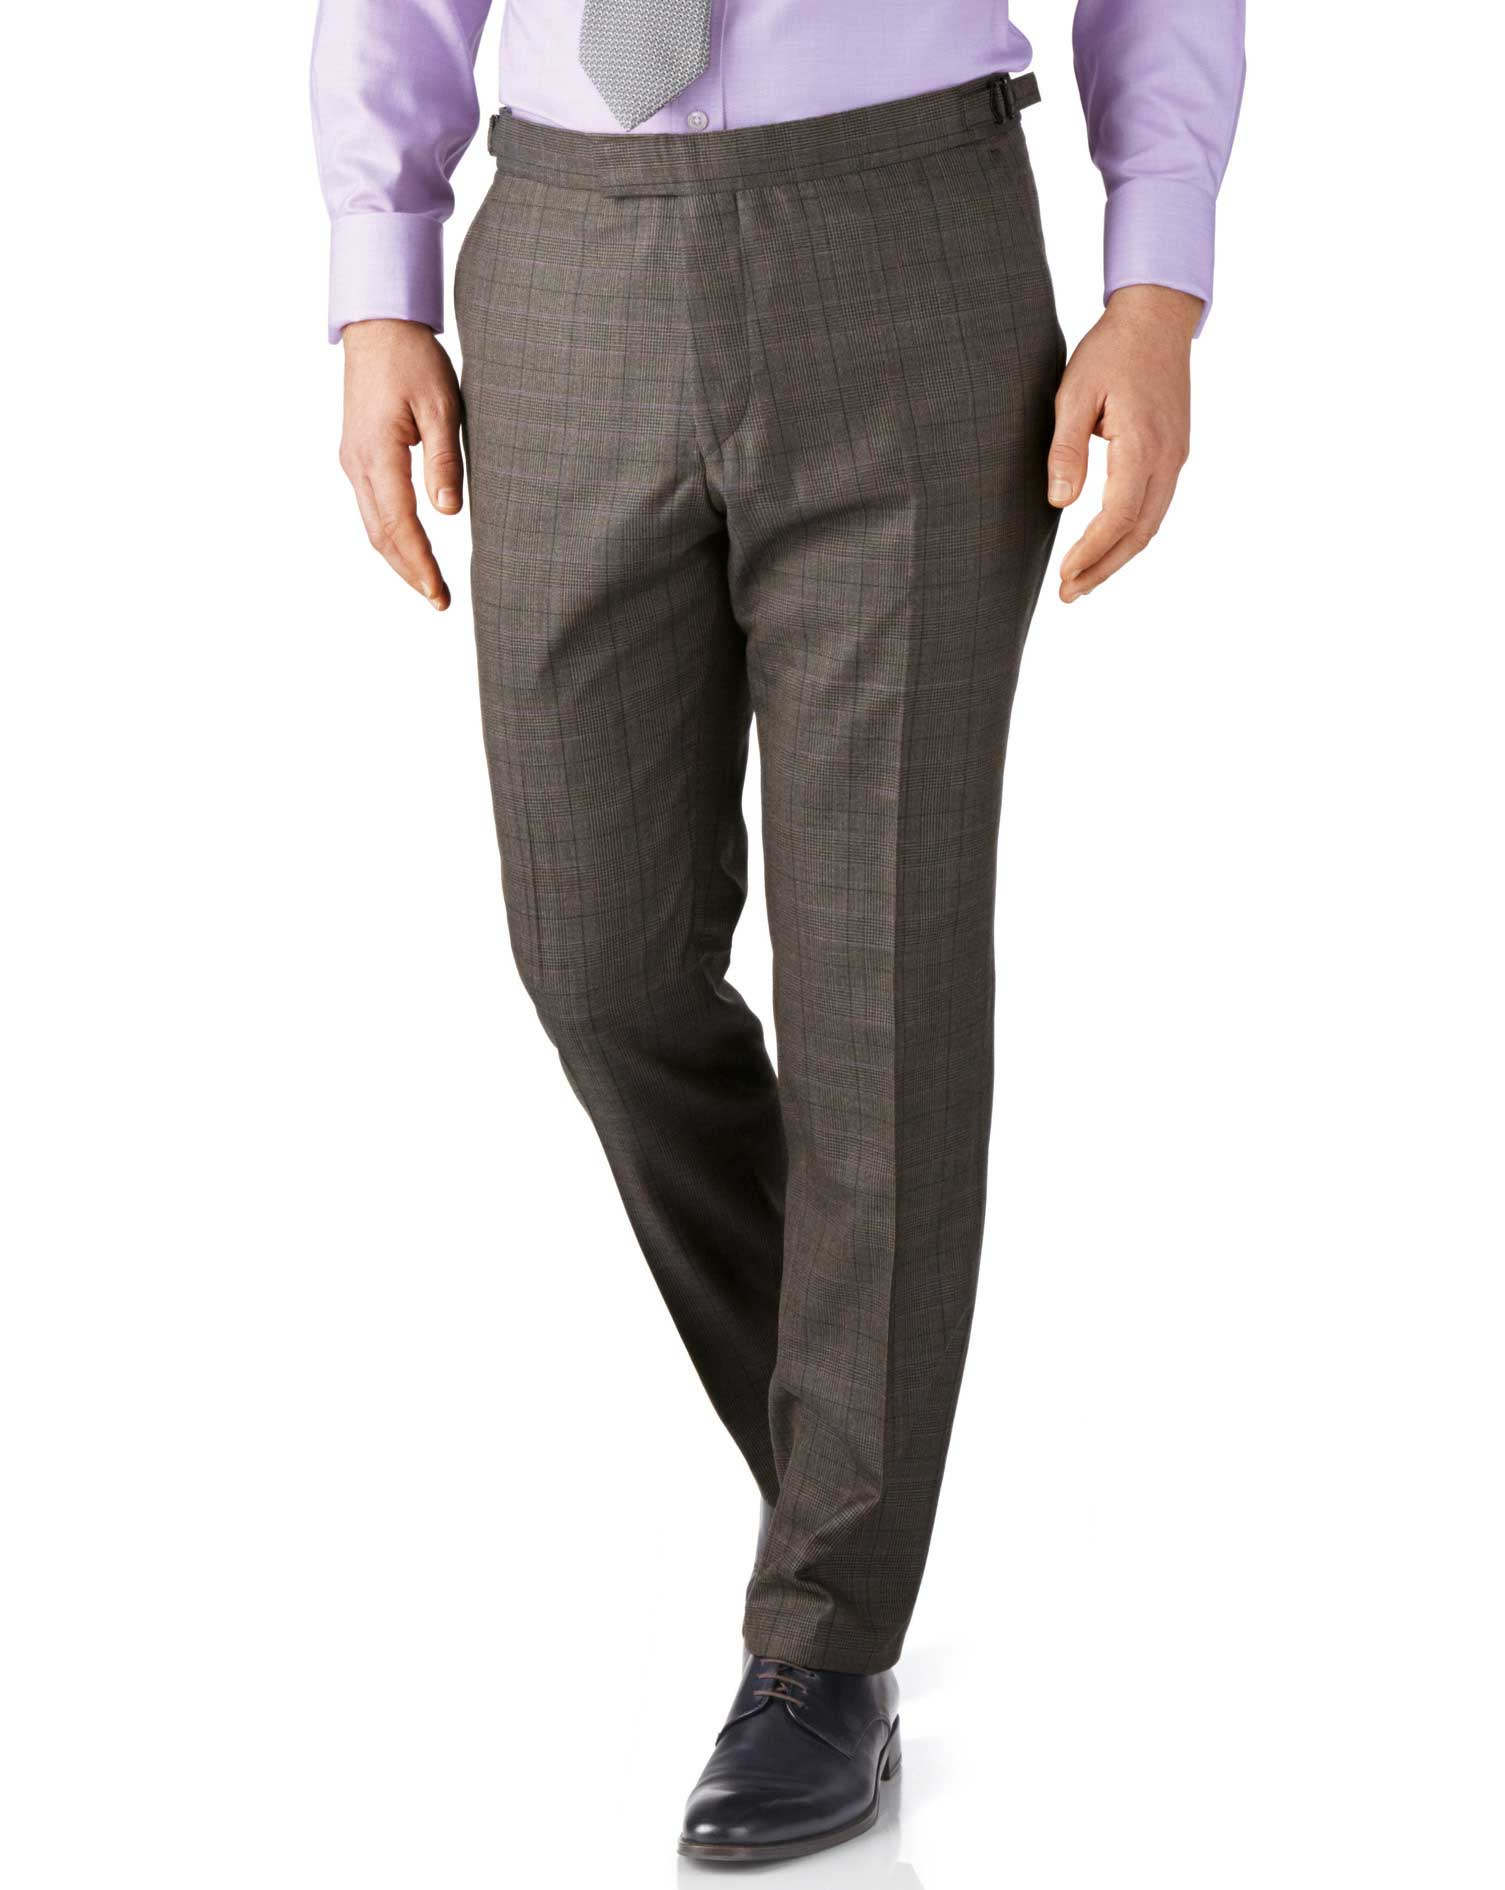 Brown Check Slim Fit British Panama Luxury Suit Trousers Size W40 L34 by Charles Tyrwhitt